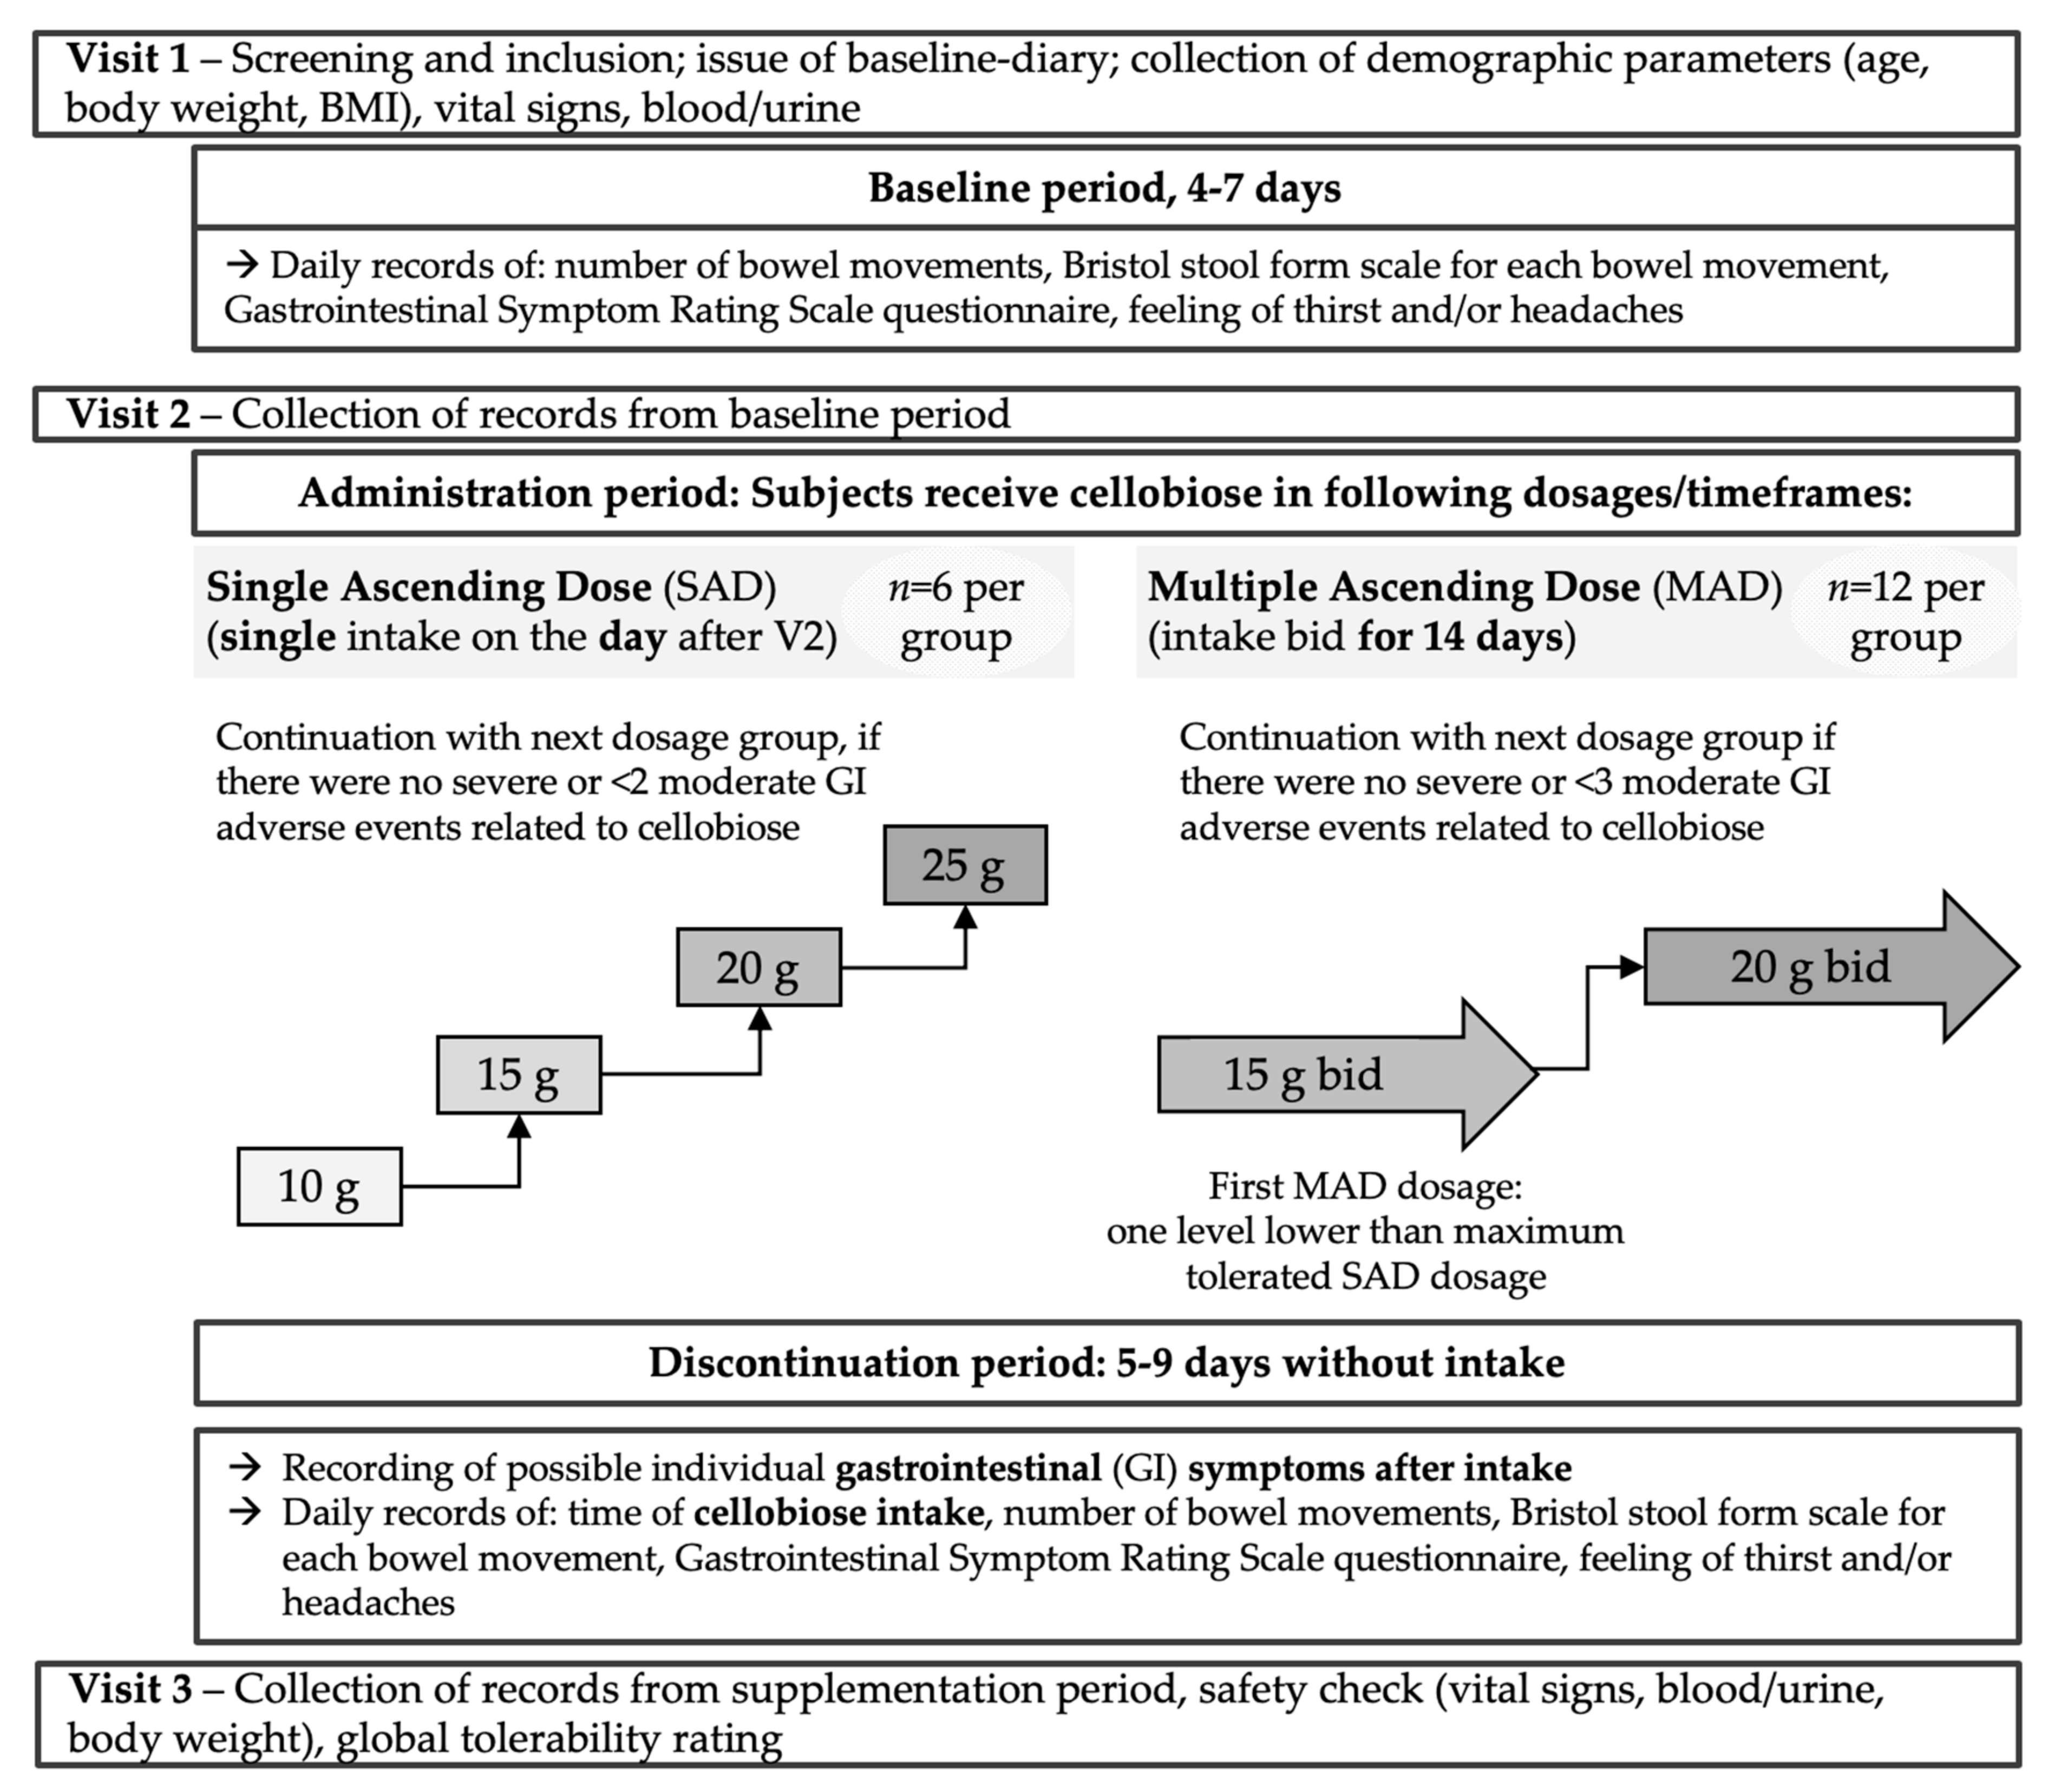 Nutrients   Free Full-Text   A Dose-Escalation Study Demonstrates the  Safety and Tolerability of Cellobiose in Healthy Subjects   HTML